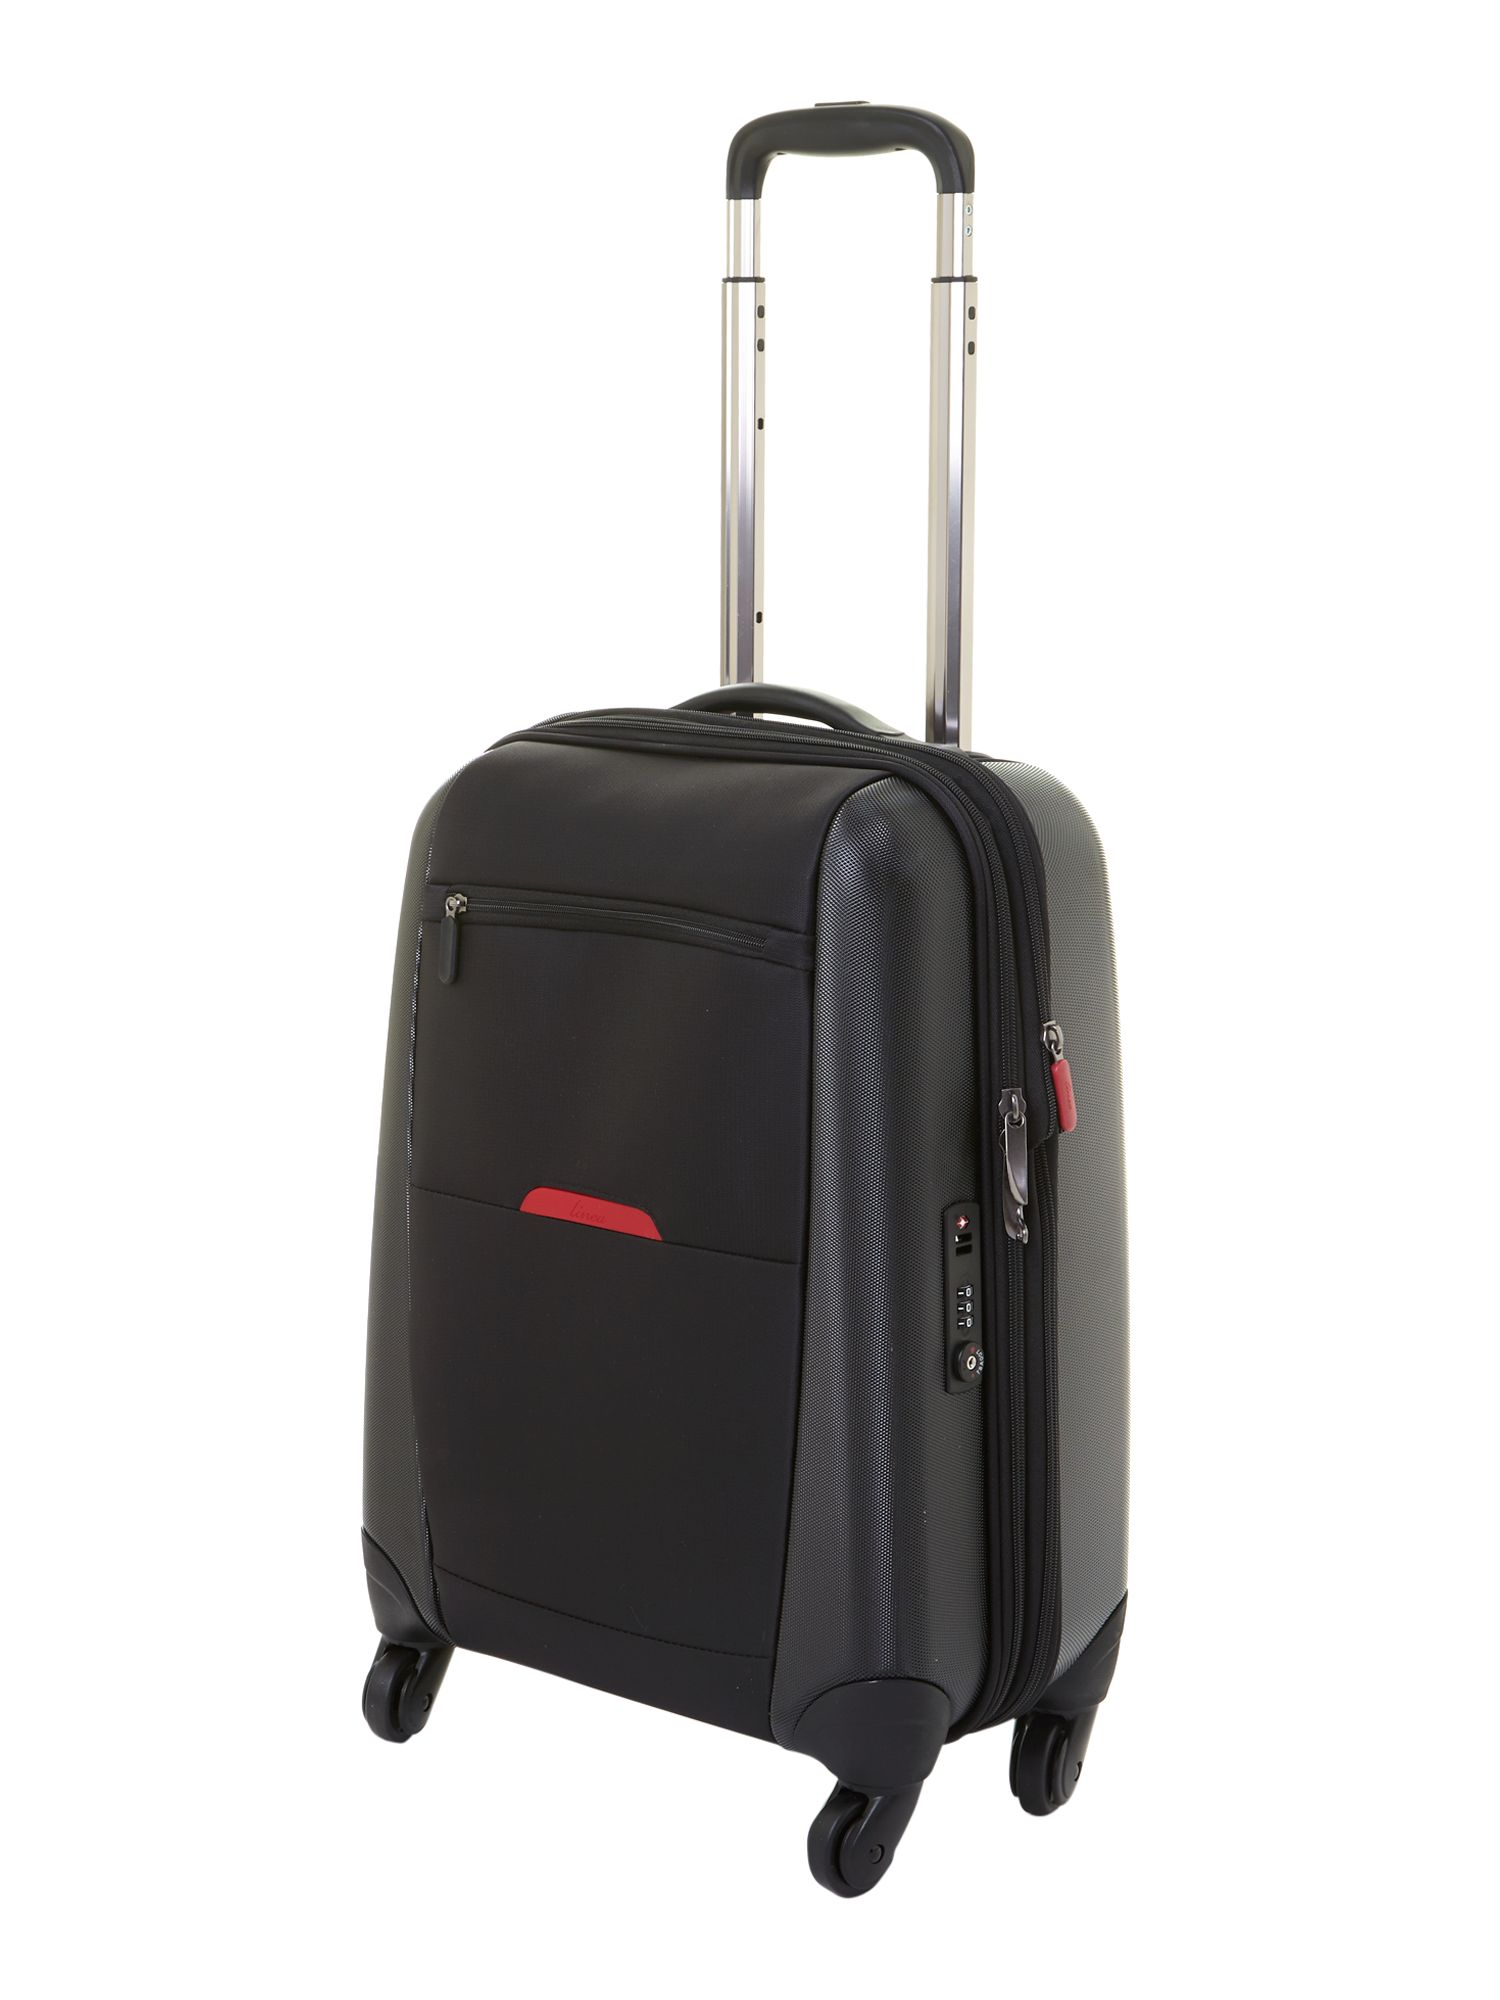 Hylite black 4-wheel cabin suitcase